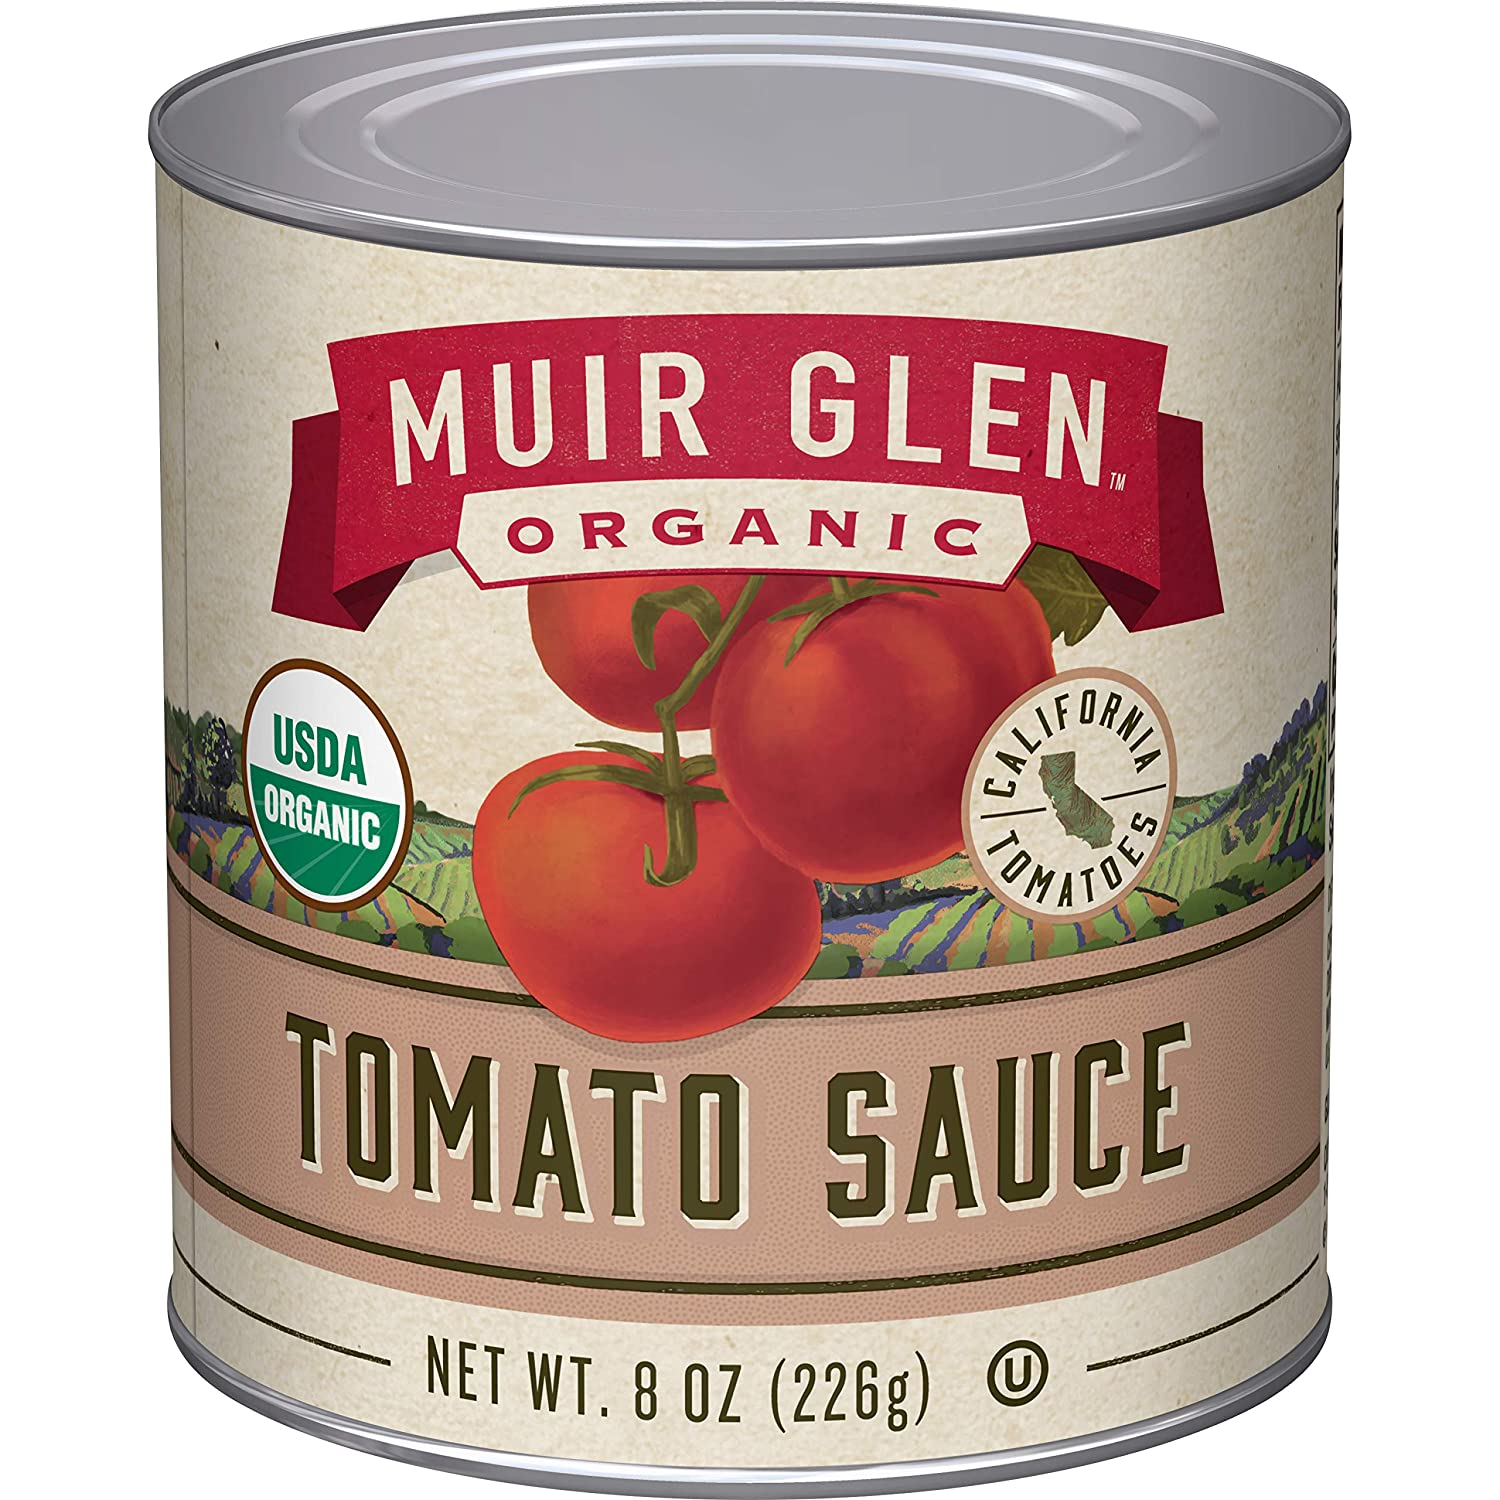 Muir Glen Organic Tomato Sauce, No Sugar Added